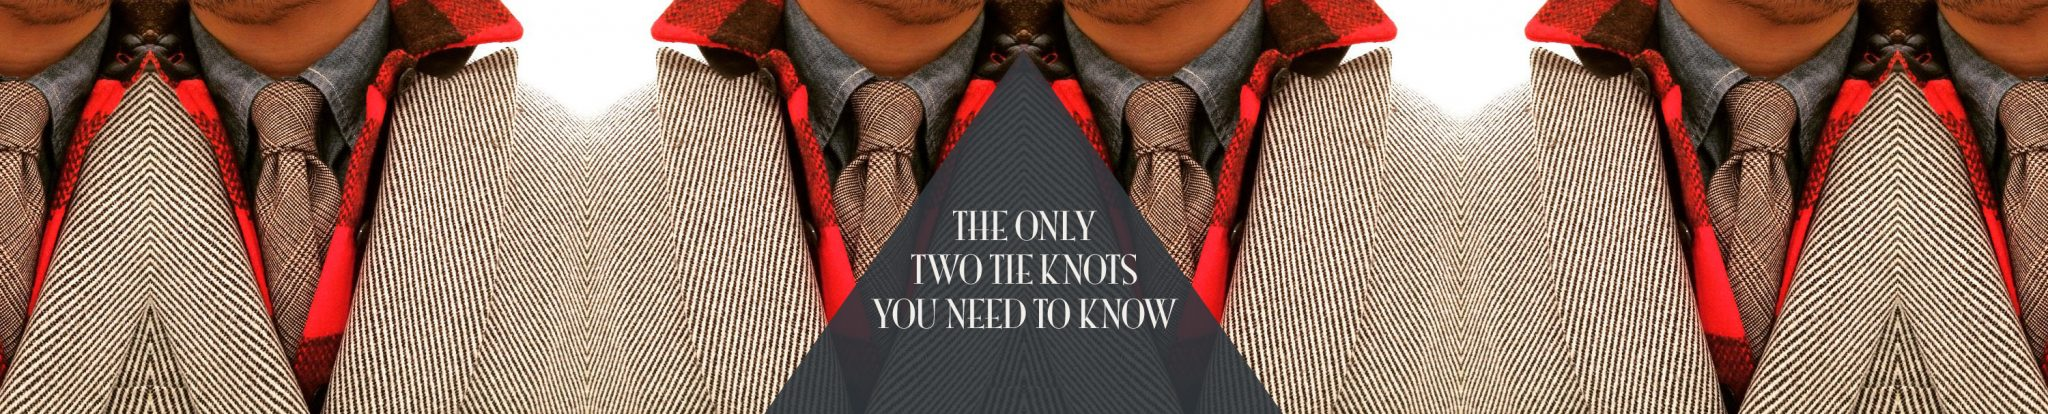 Qa the only two tie knots you need to know ignore everything qa the only two tie knots you need to know ignore everything else ccuart Gallery